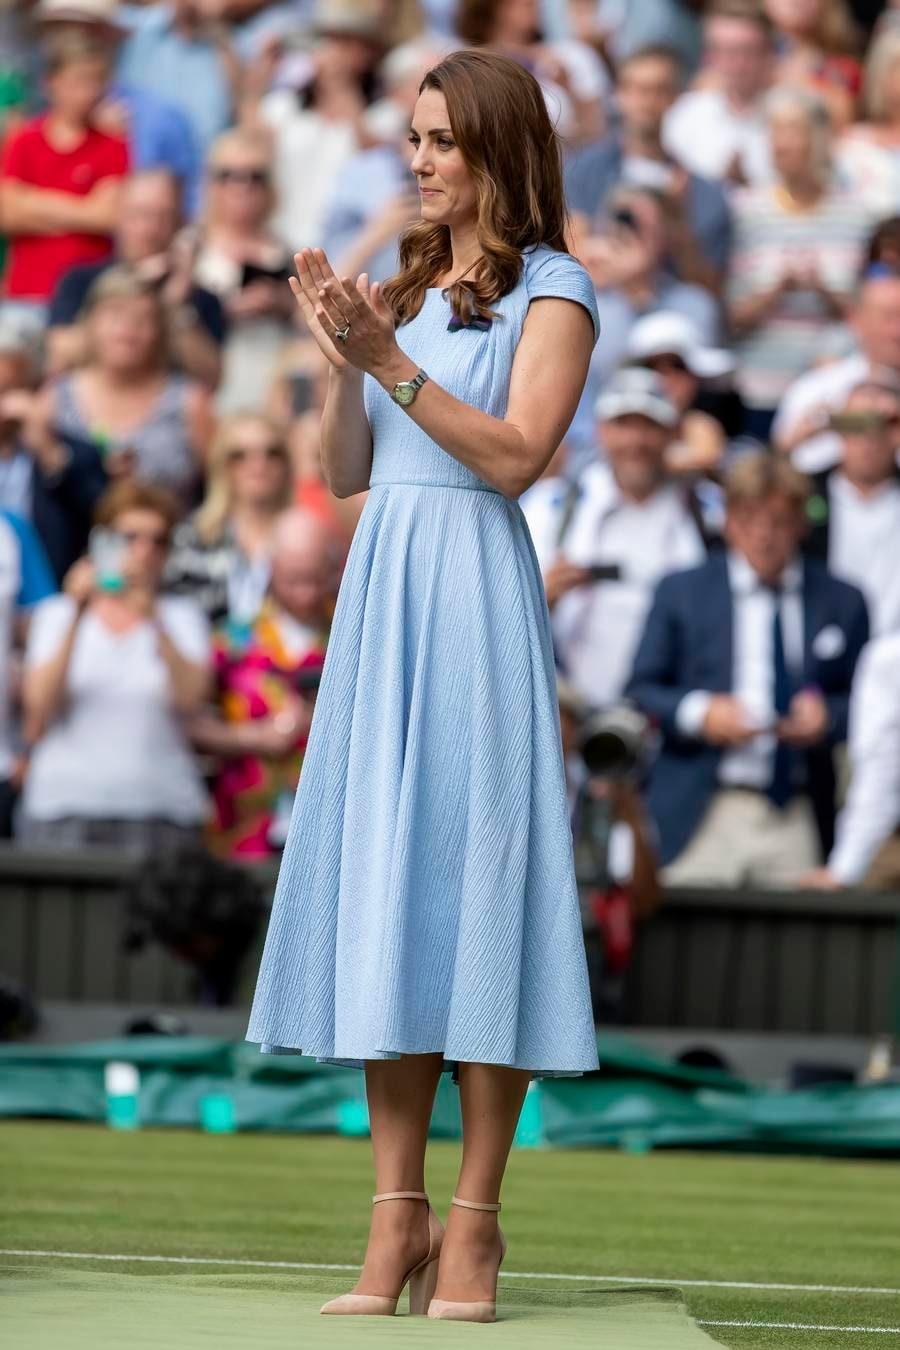 kate-middleton-blue-dress-at-the-wimbledon-championships.jpg